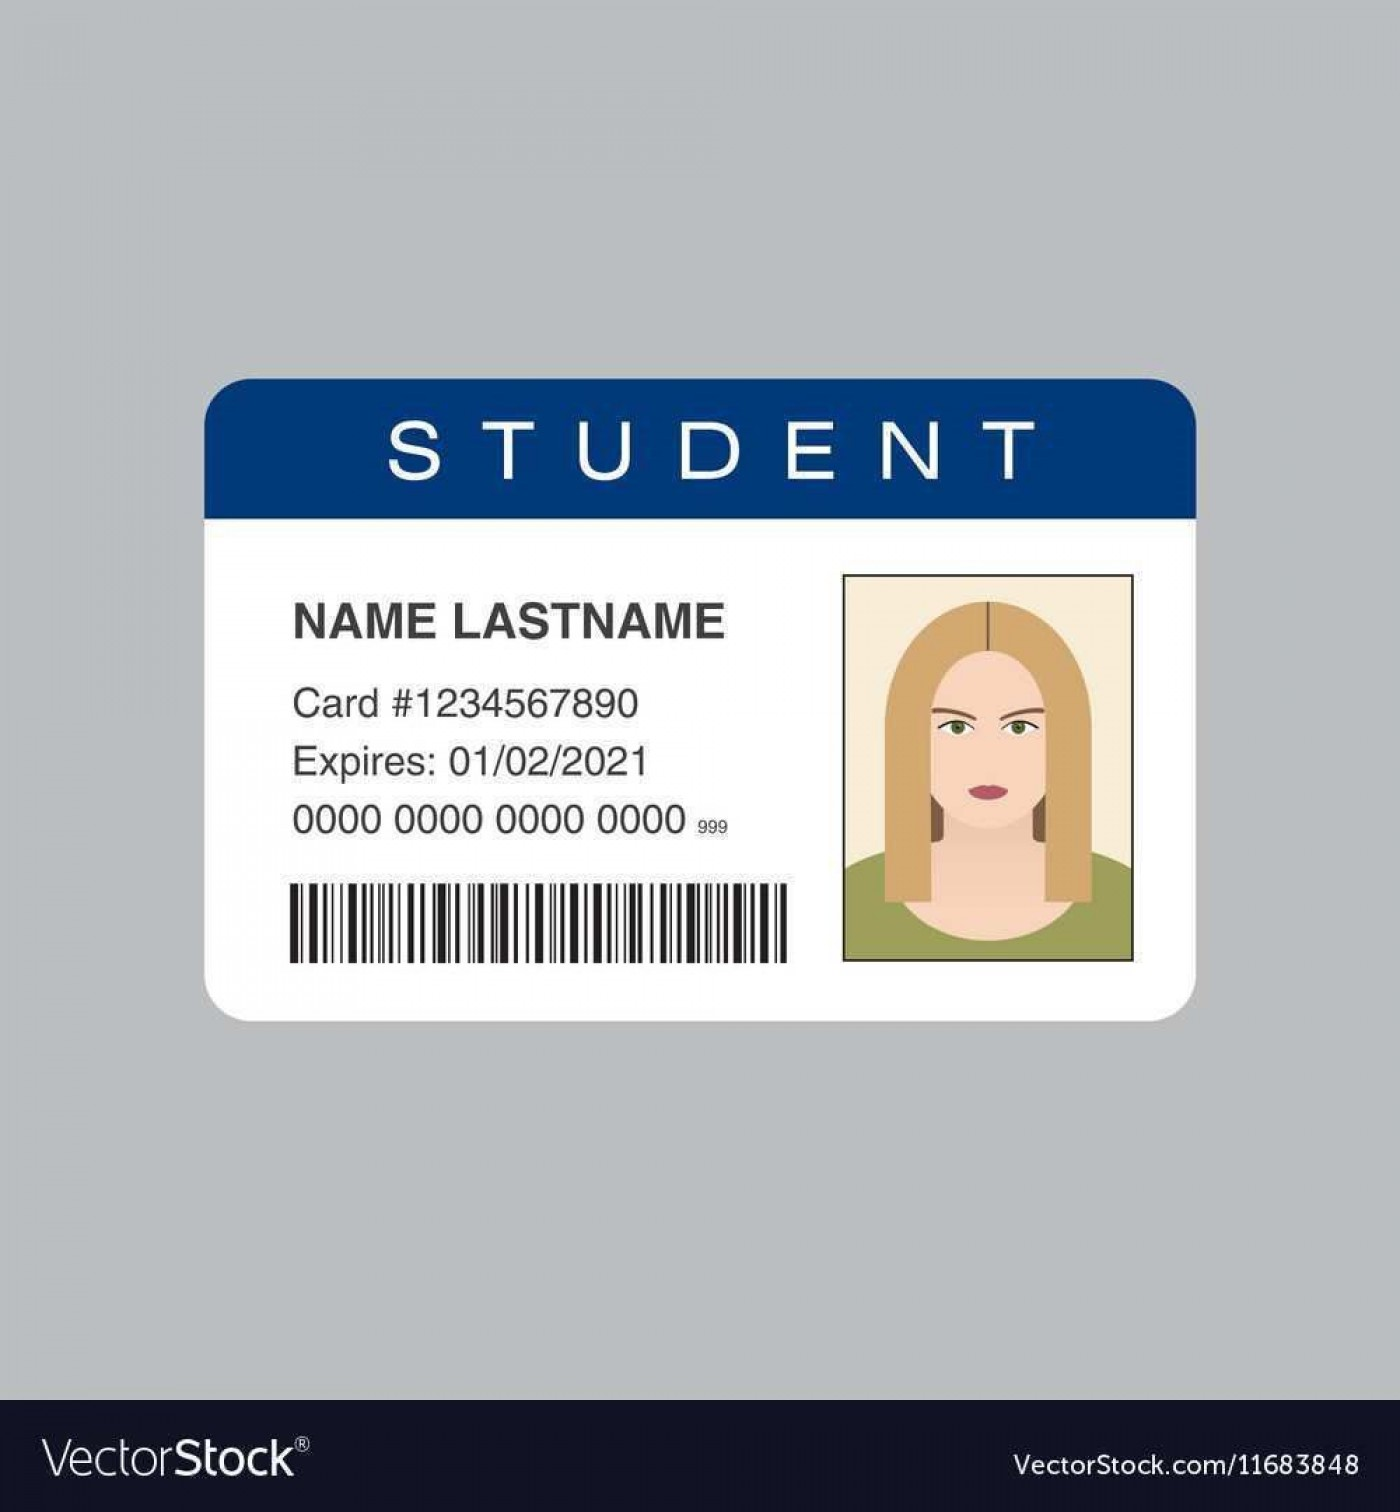 002 Fantastic Student Id Card Template High Resolution  Psd Free School Microsoft Word Download1400